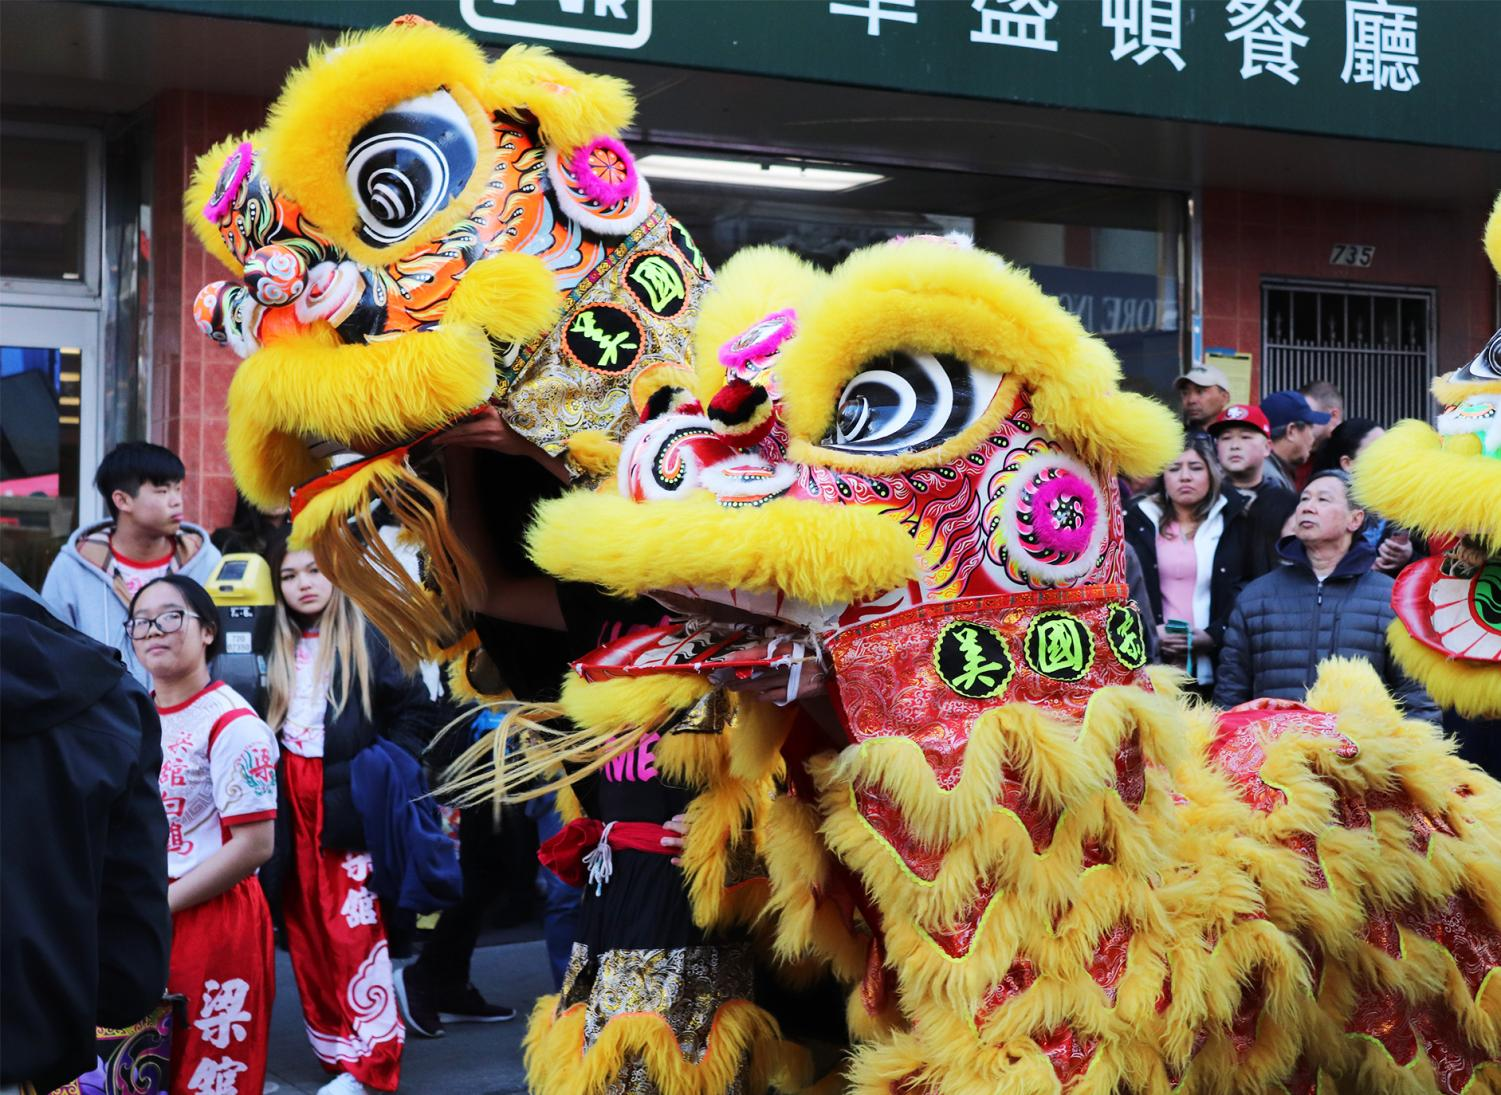 Lion dancers parade through the streets before the ceremony begins.